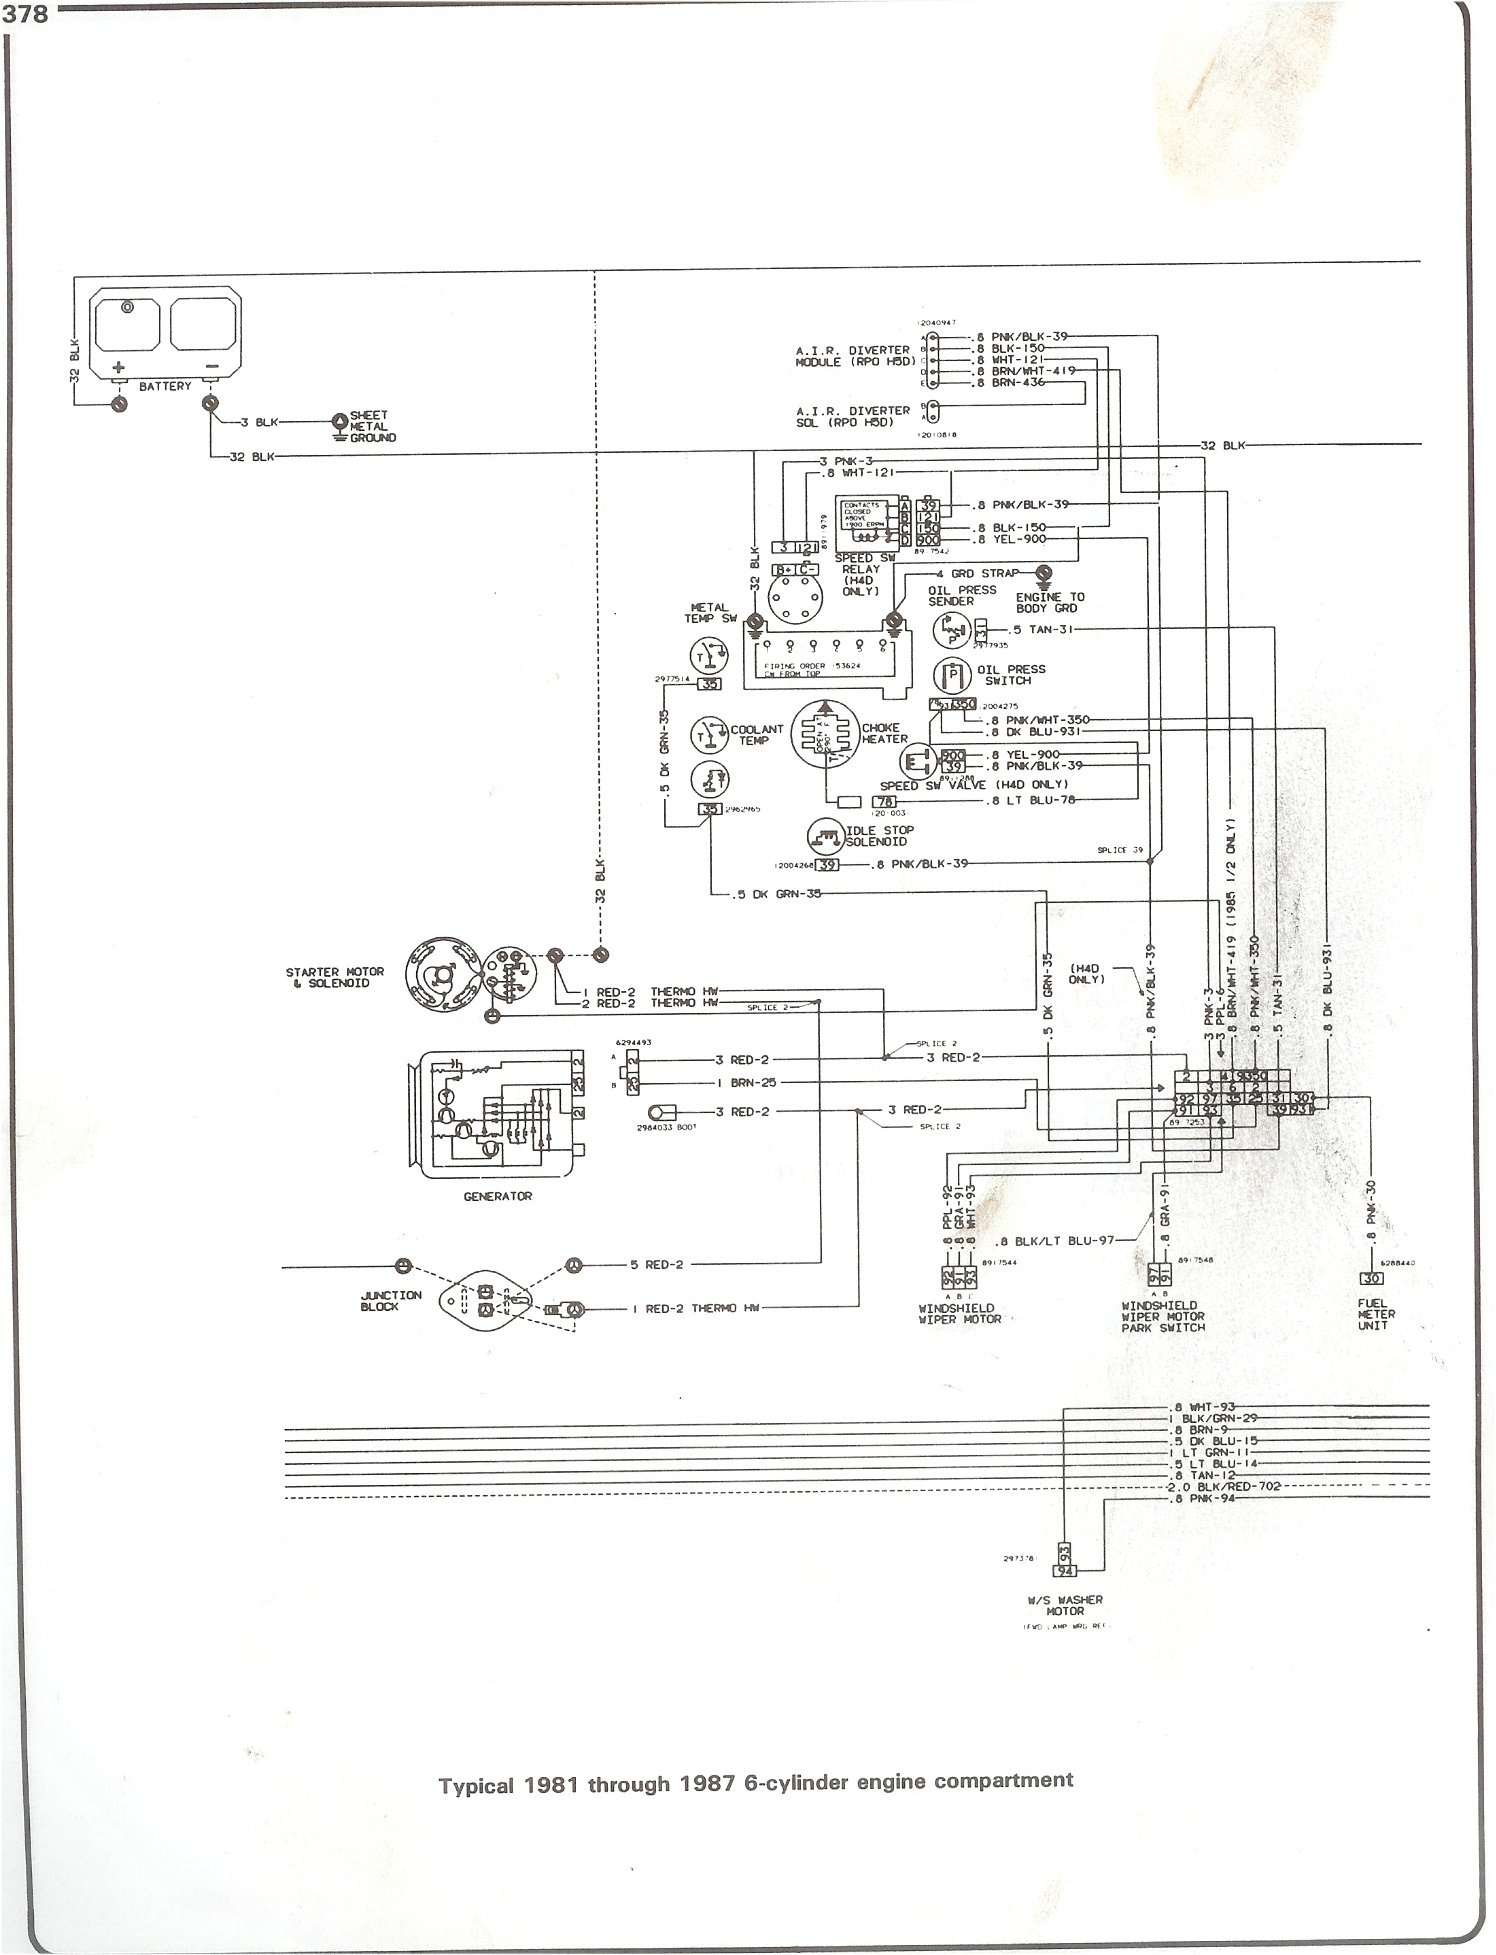 [SCHEMATICS_4CA]  Complete 73-87 Wiring Diagrams | Light Switch Wiring Diagram 1981 C10 |  | 73-87 Chevy Trucks